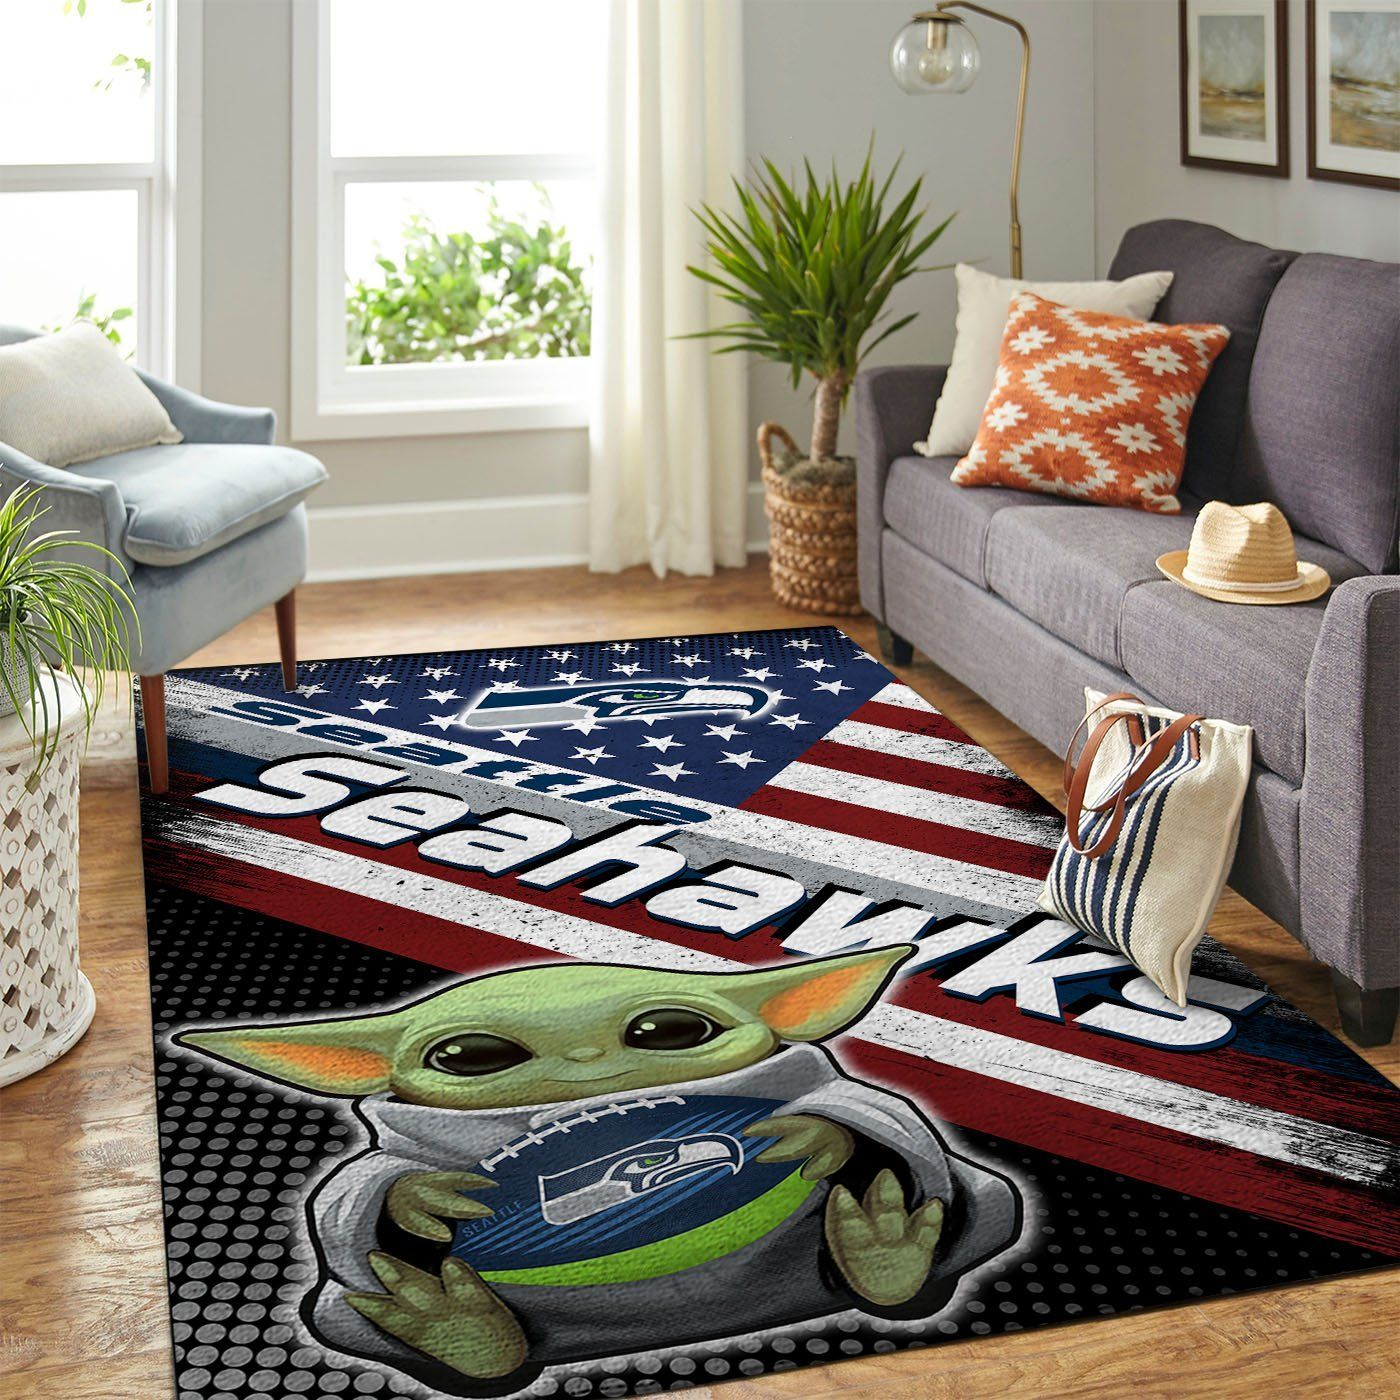 Amazon Seattle Seahawks Living Room Area No4967 Rug